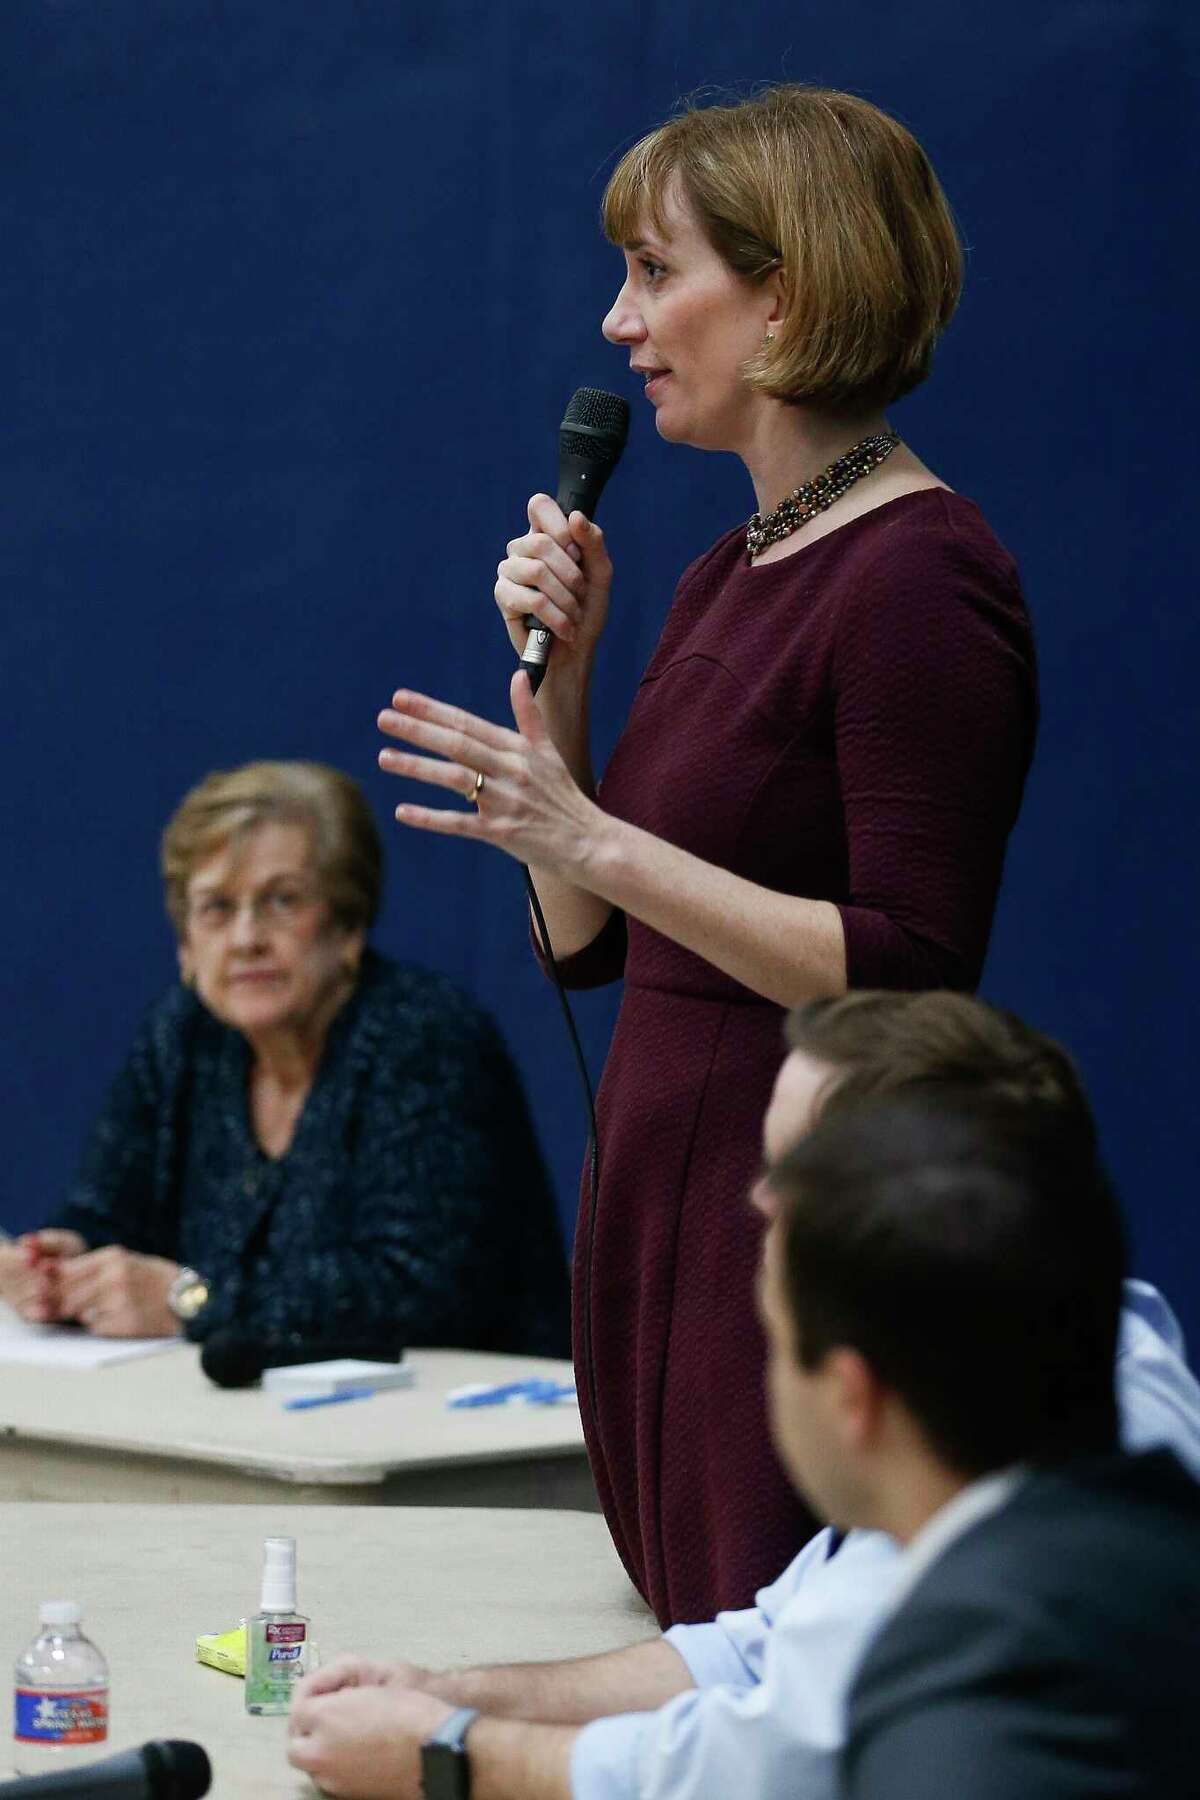 Congressional candidate Laura Moser answers a question as democrats vying to take on congressman John Culberson speak to voters at a Bayou Blue Democrats candidate forum at St. Stephens Episcopal Church Wednesday, Feb. 7, 2018 in Houston.